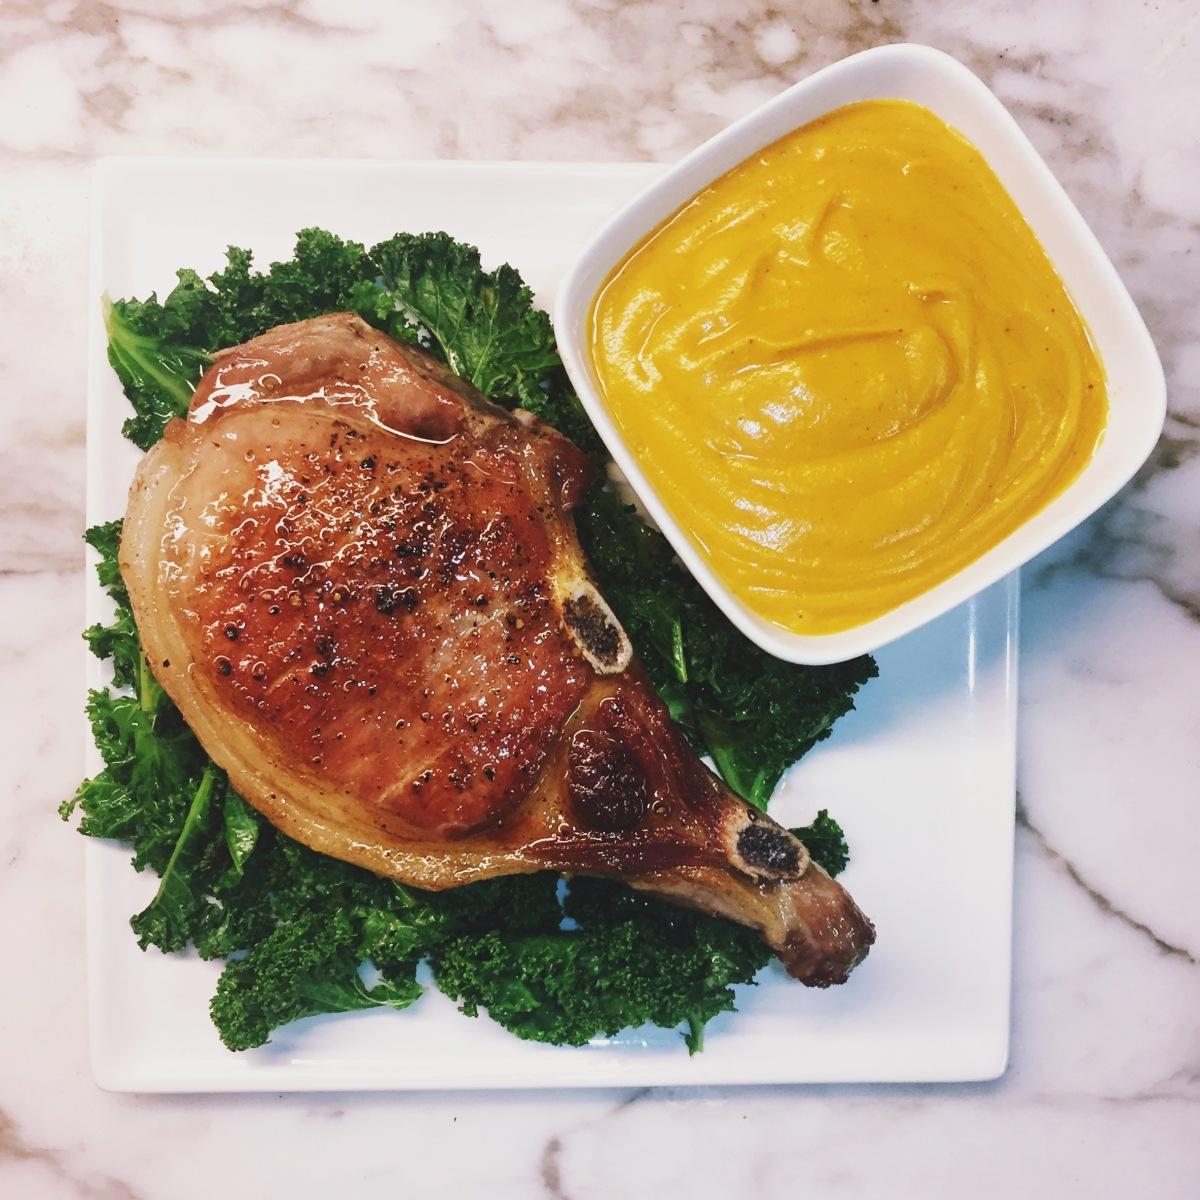 Butternut Squash Soup with Pan Seared Pork Chop and CrispedKale